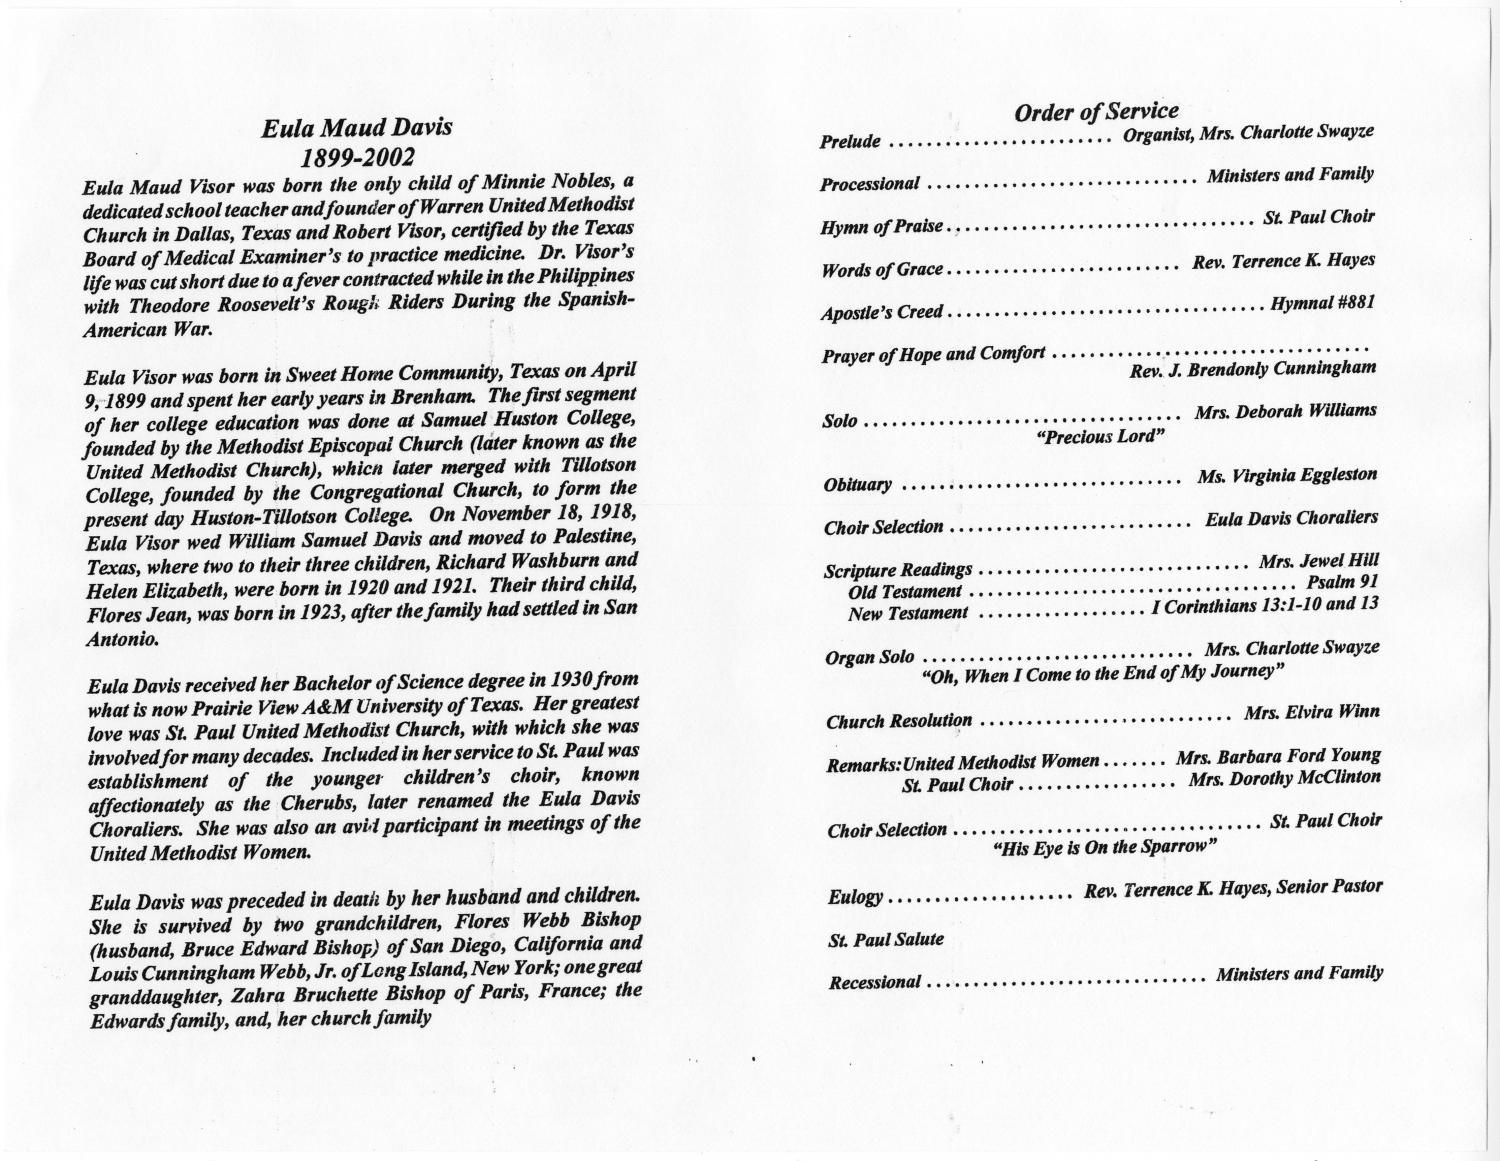 [Funeral Program for Eula Maud Davis, August 6, 2002] - Page 2 of 3 - The Portal to Texas History